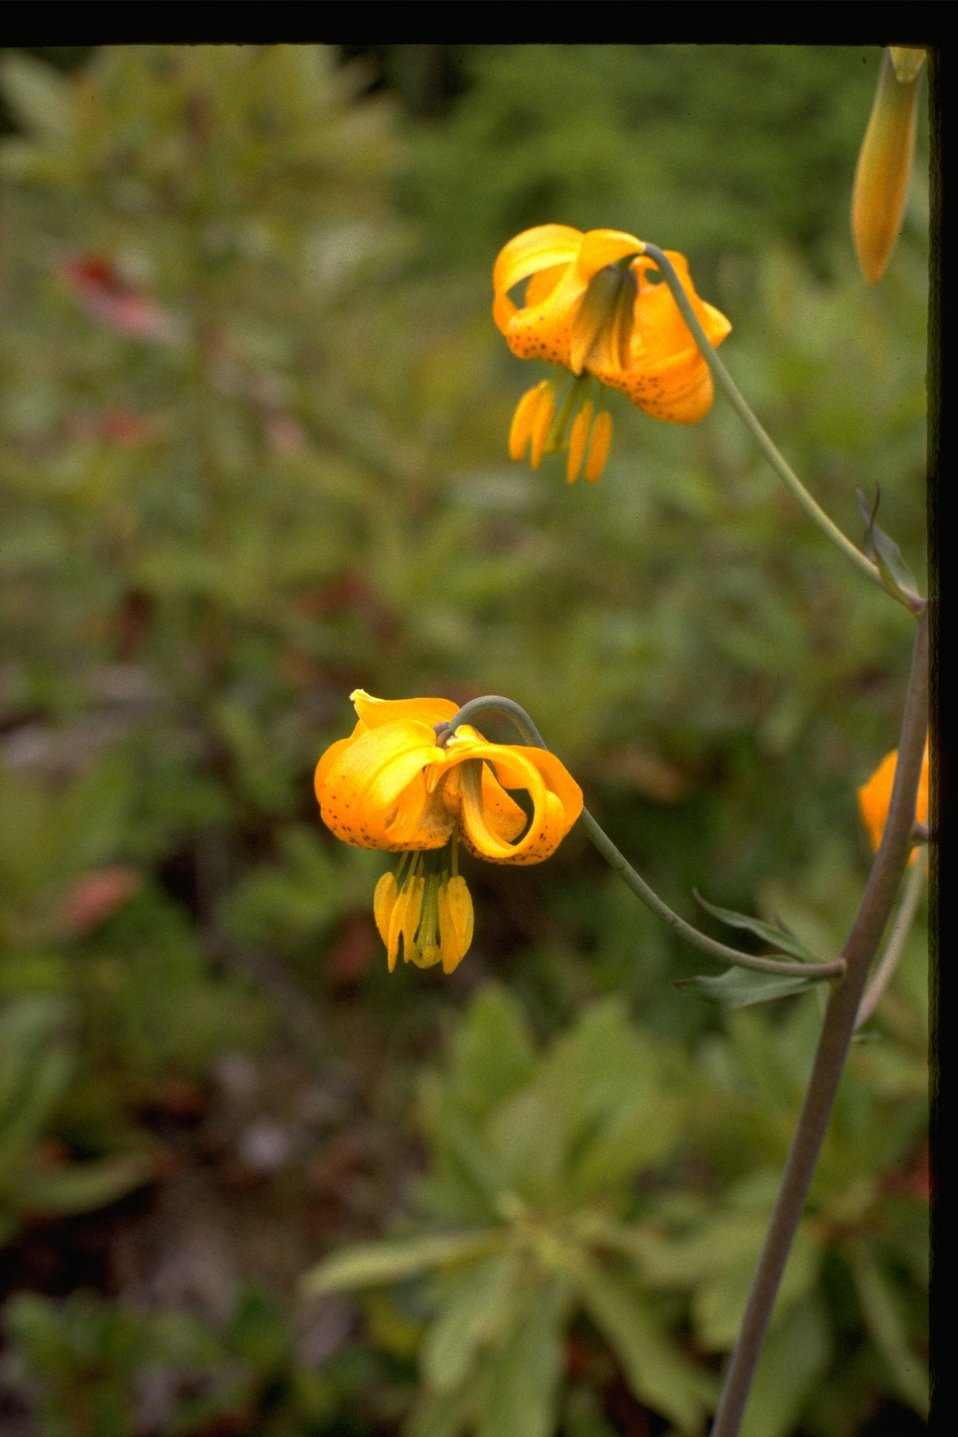 The Tiger Lily, or the Lilium tigrinum, of the Liliaceae family.